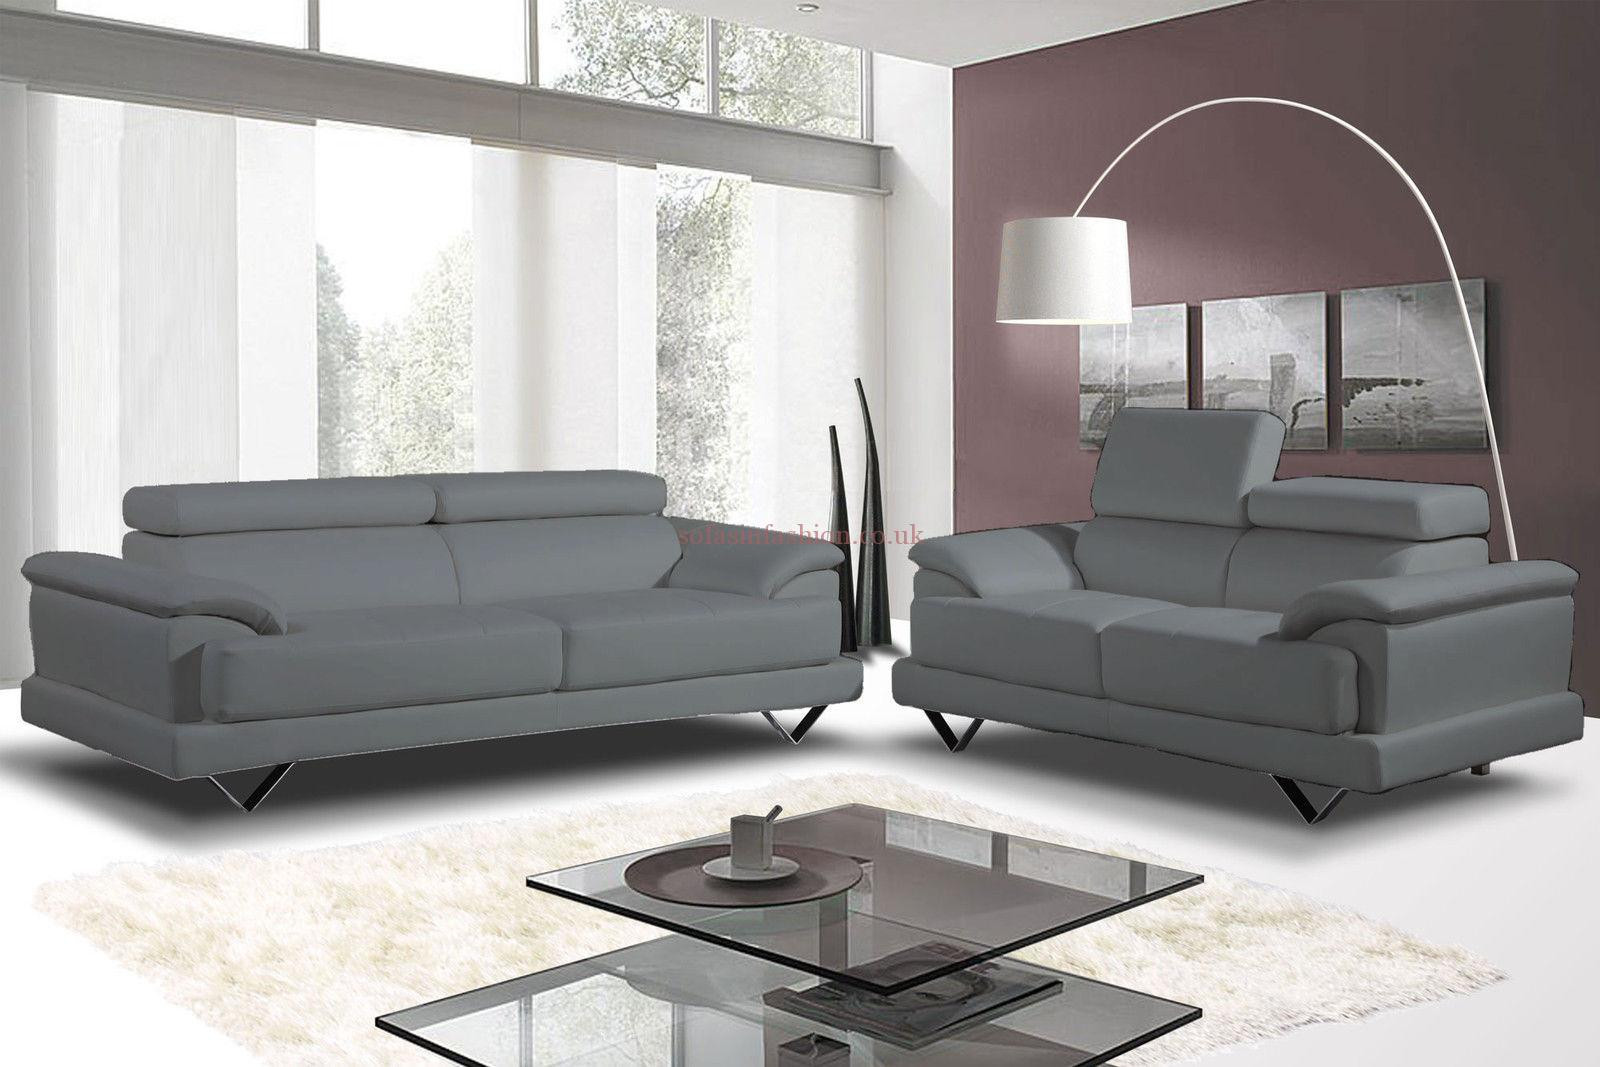 Best ideas about Light Gray Sofa . Save or Pin Light Gray Leather Sofa Gia Light Grey Full Italian Modern Now.